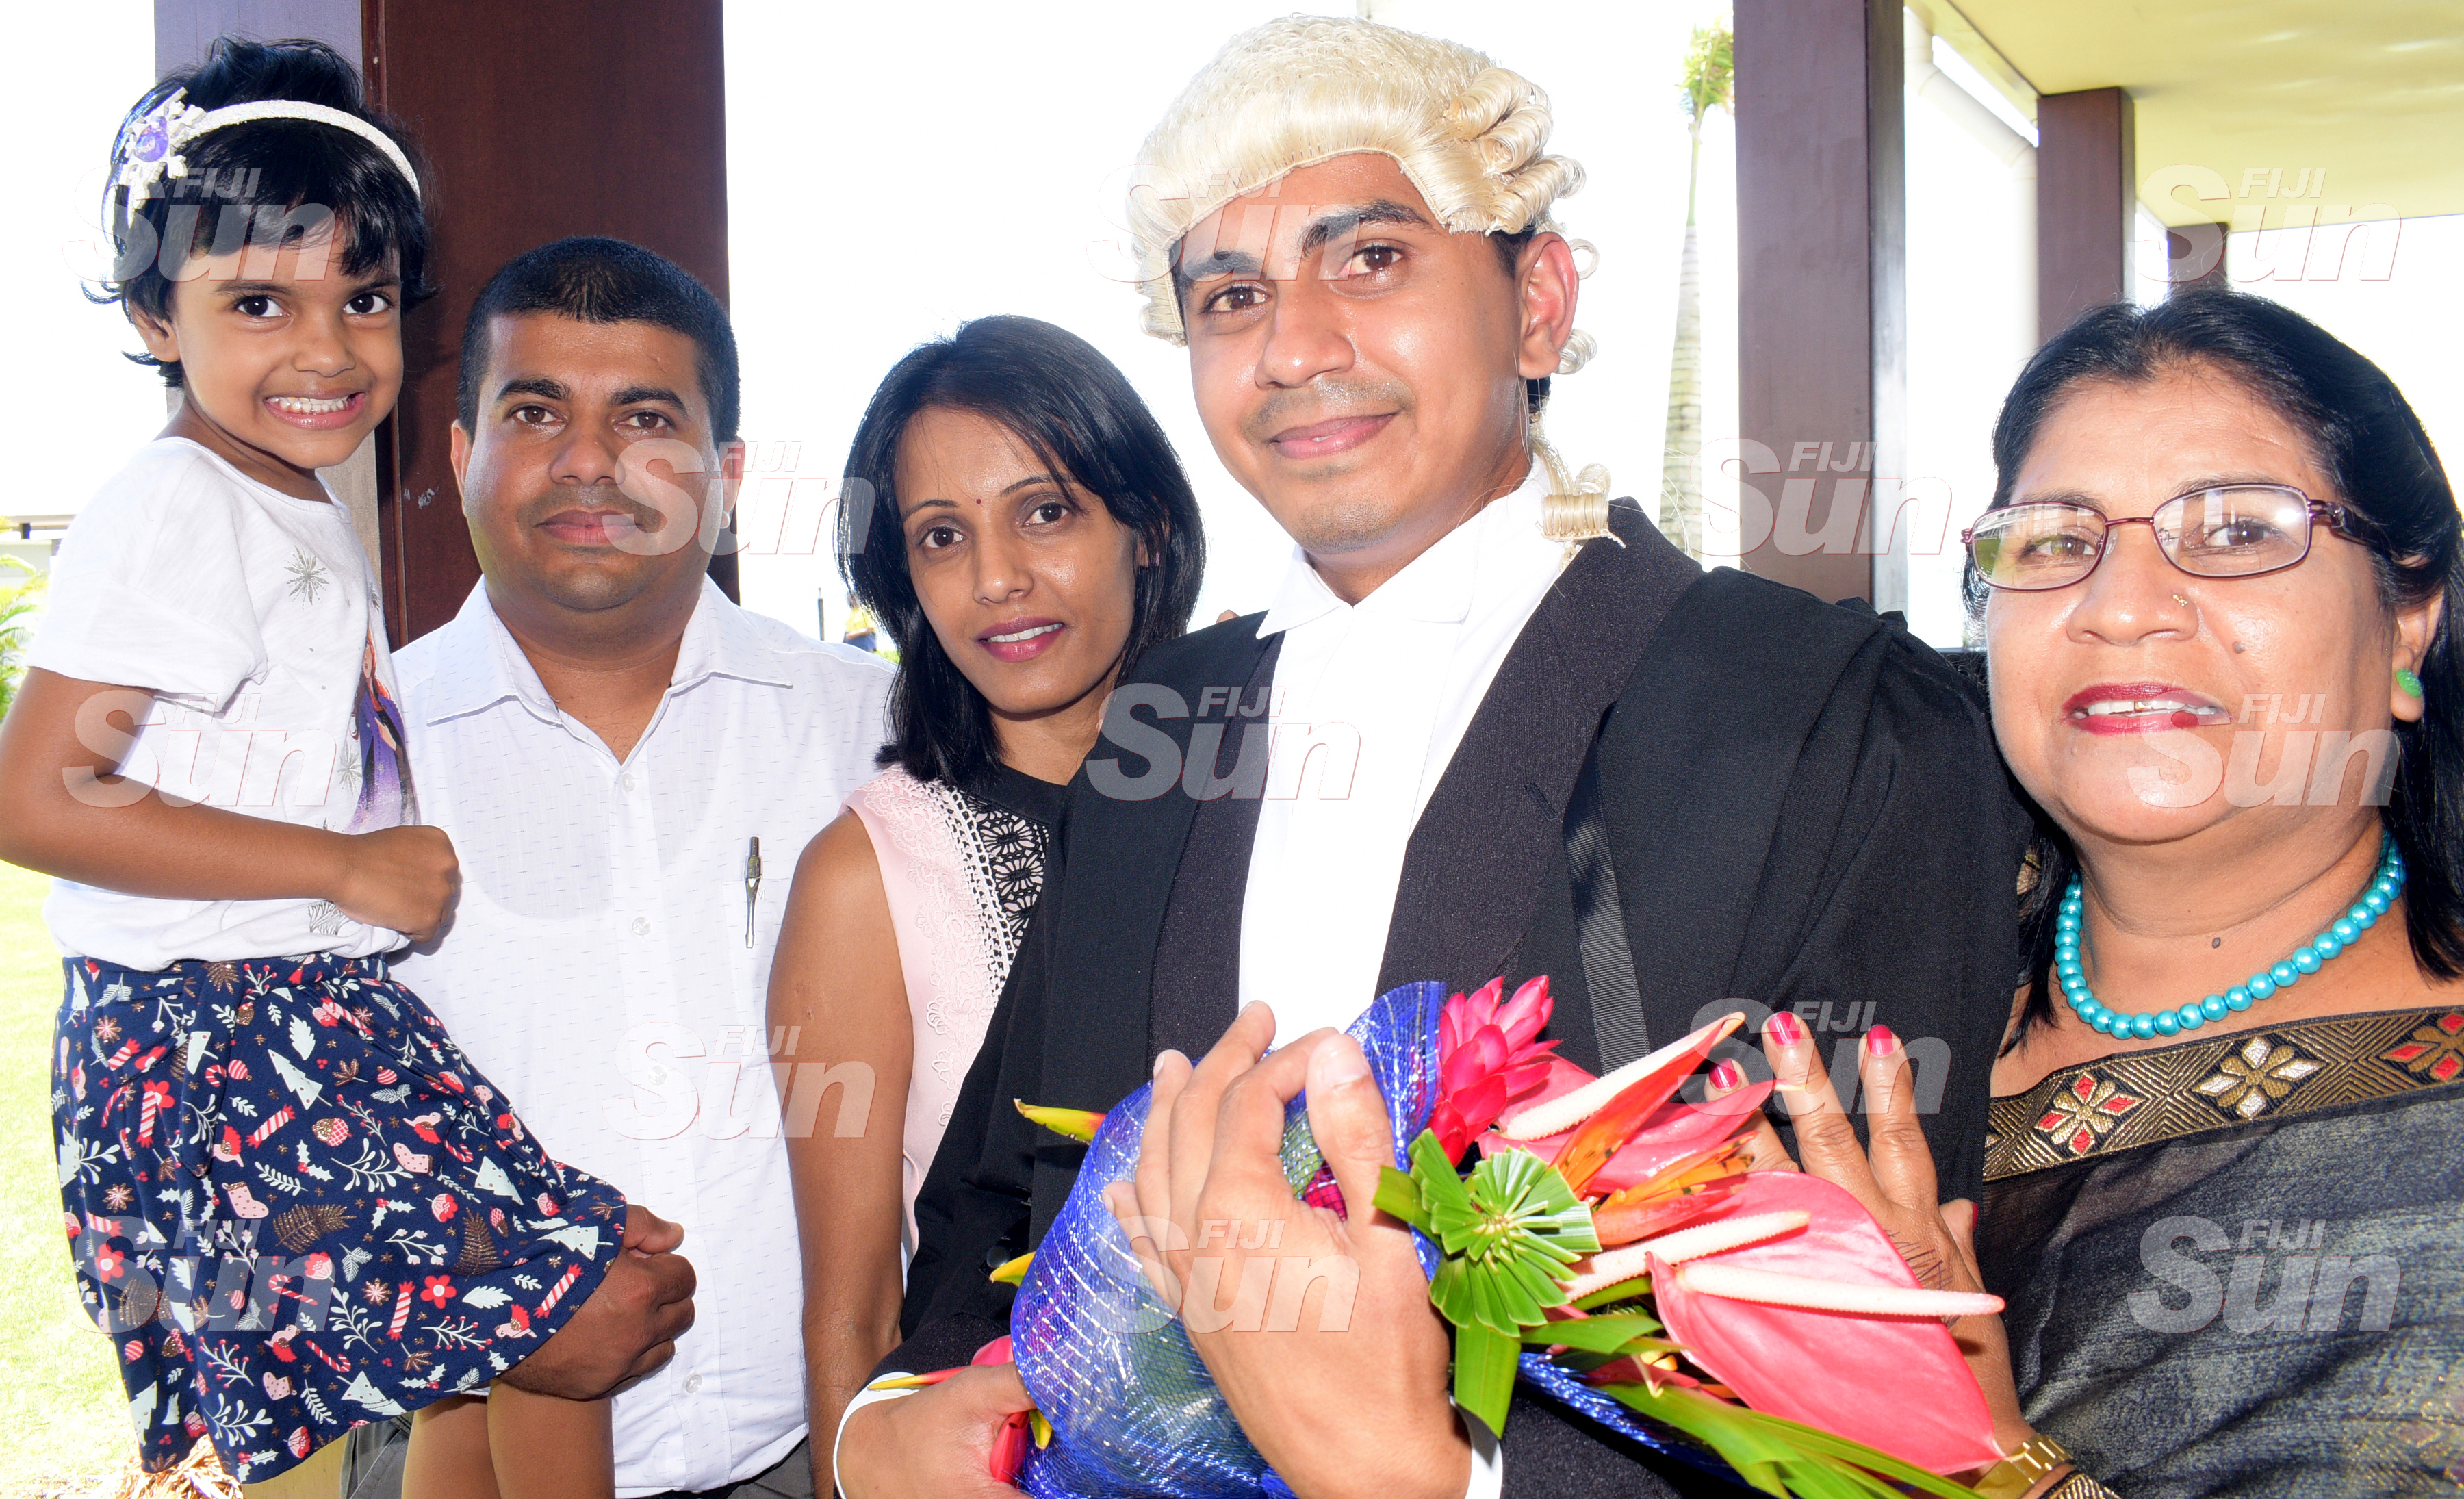 Prashant Susuhil (second from right) celebrate with his family members after his admission to the Bar on January 31, 2020. Photo: Ronald Kumar.